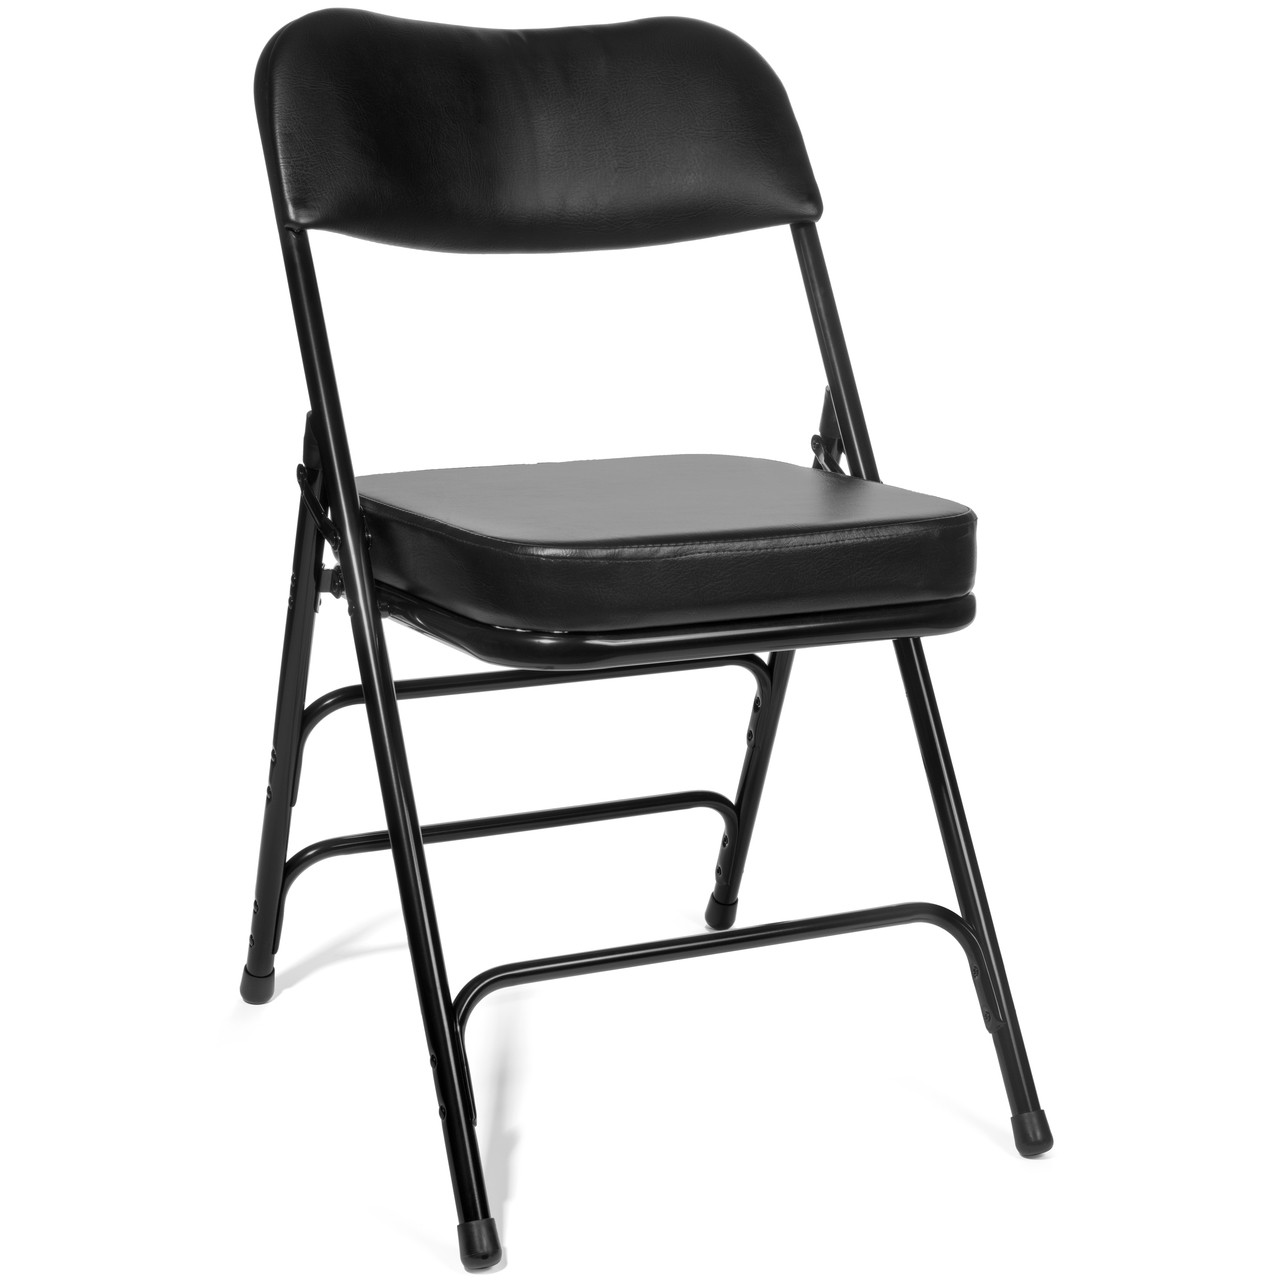 black padded folding chairs hanging chair pinterest xl series 2 inch vinyl taller back quad thick hinged triple cross braced